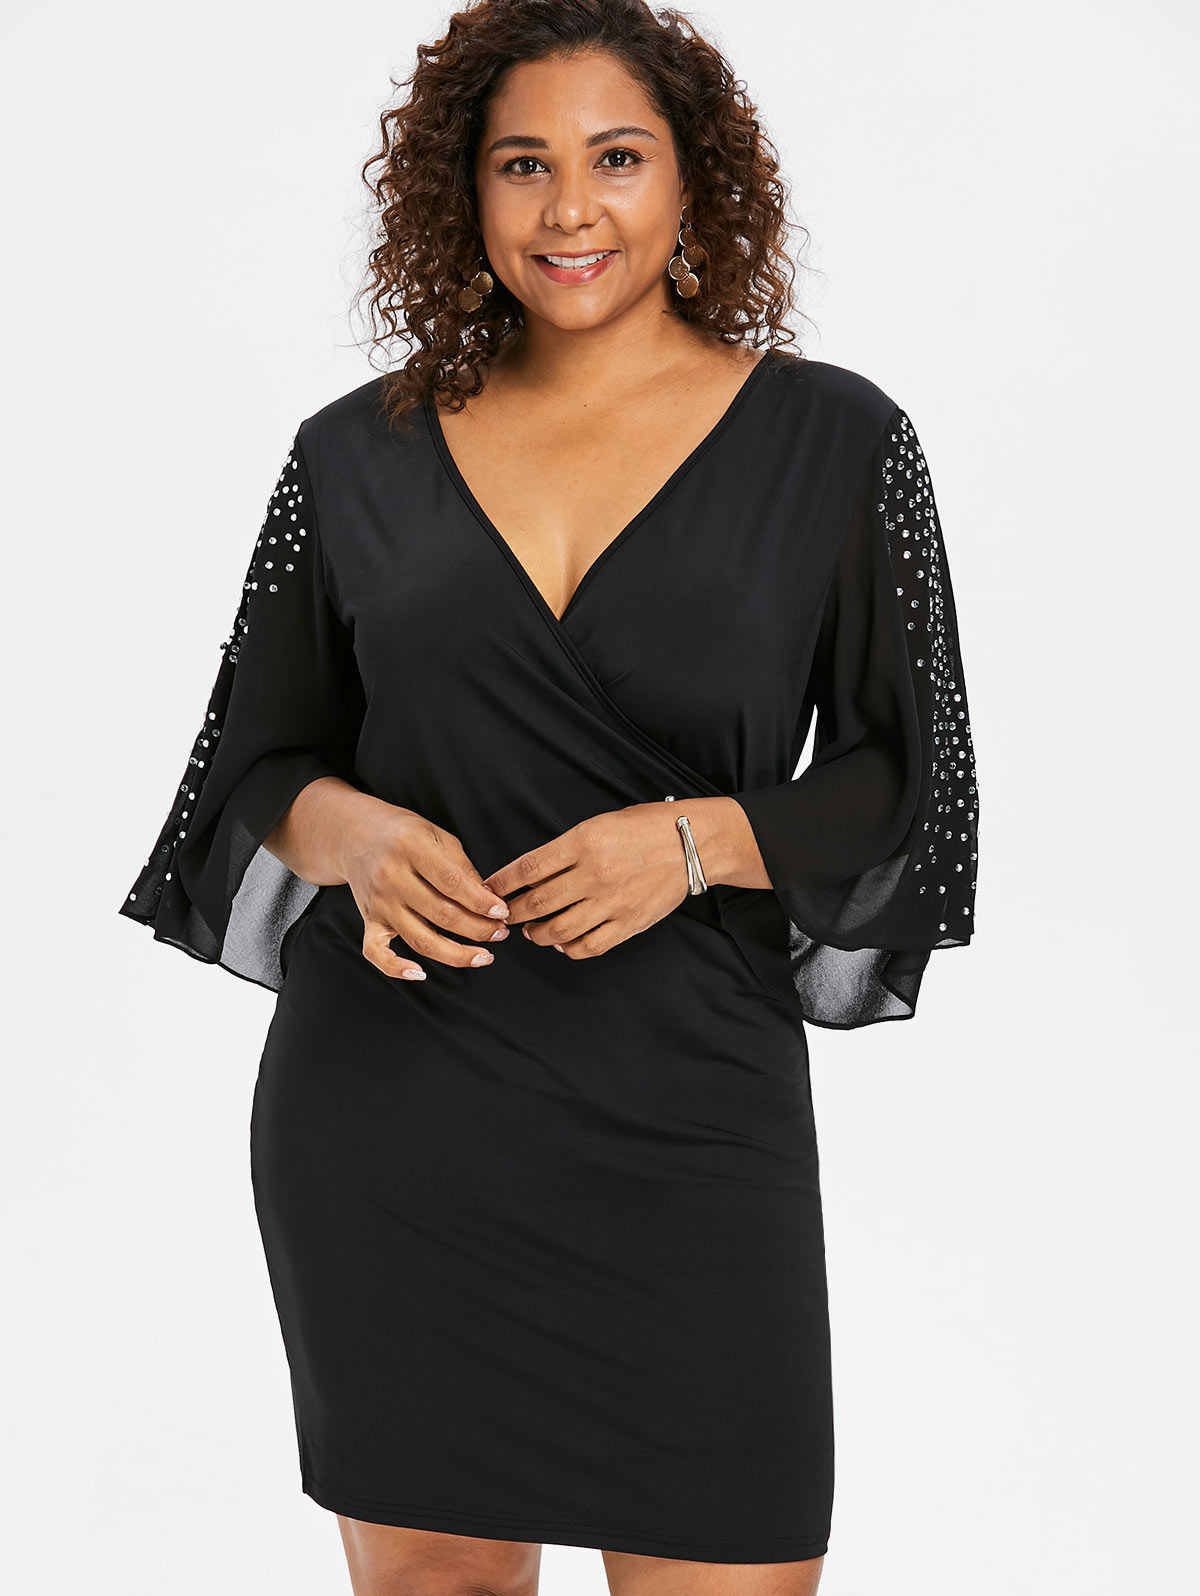 Wipalo Sexy Plus Size Elegant Flare Slit Sleeve Sheath Dress Rhinestone Embellished V-Neck Black Dress 2018 Large Sizes Vestido